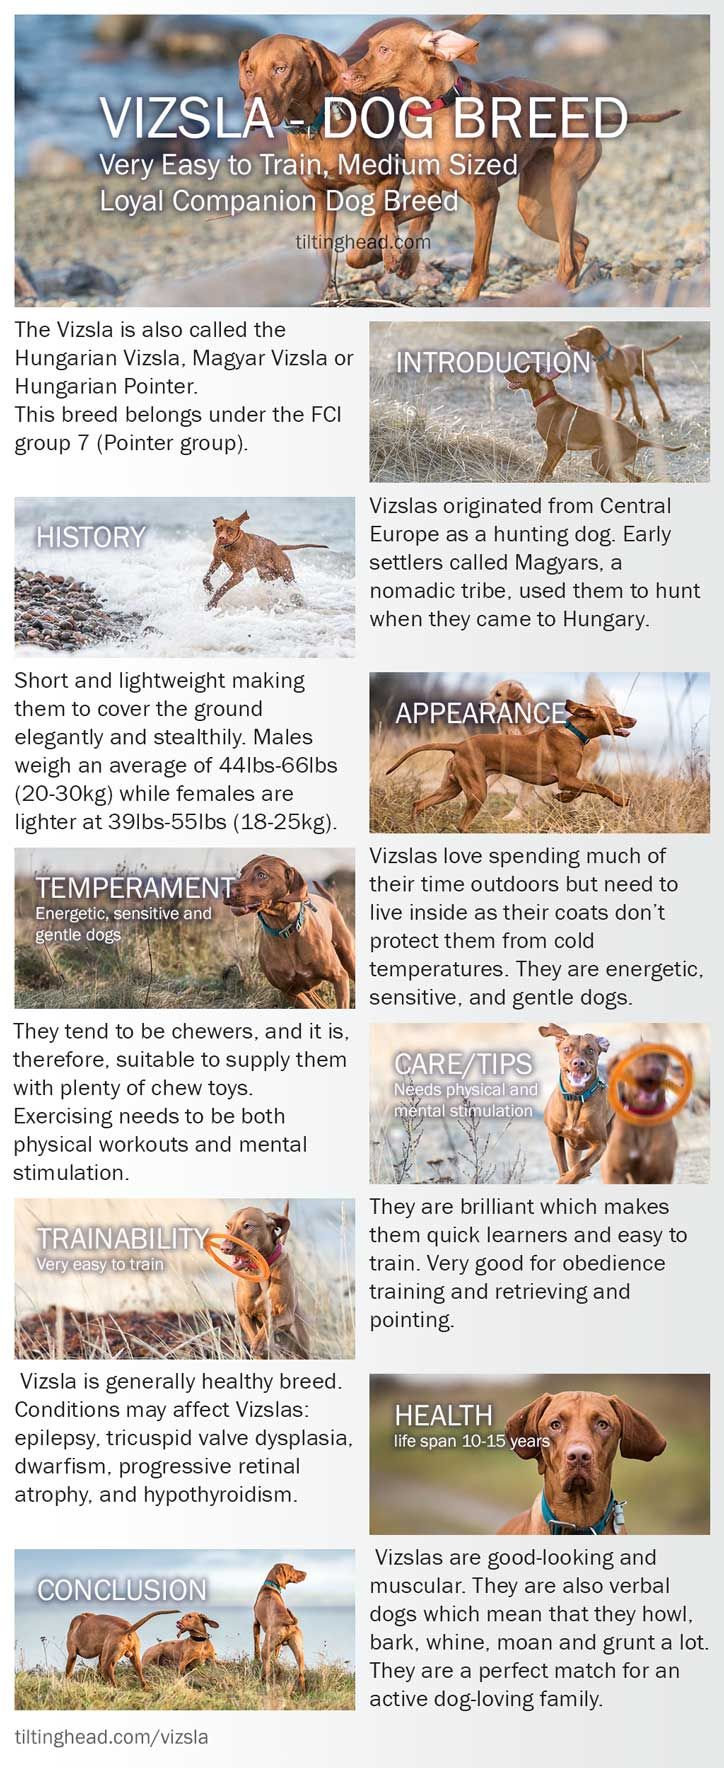 vizsla dog breed Infographic http://tiltinghead.com/vizsla/